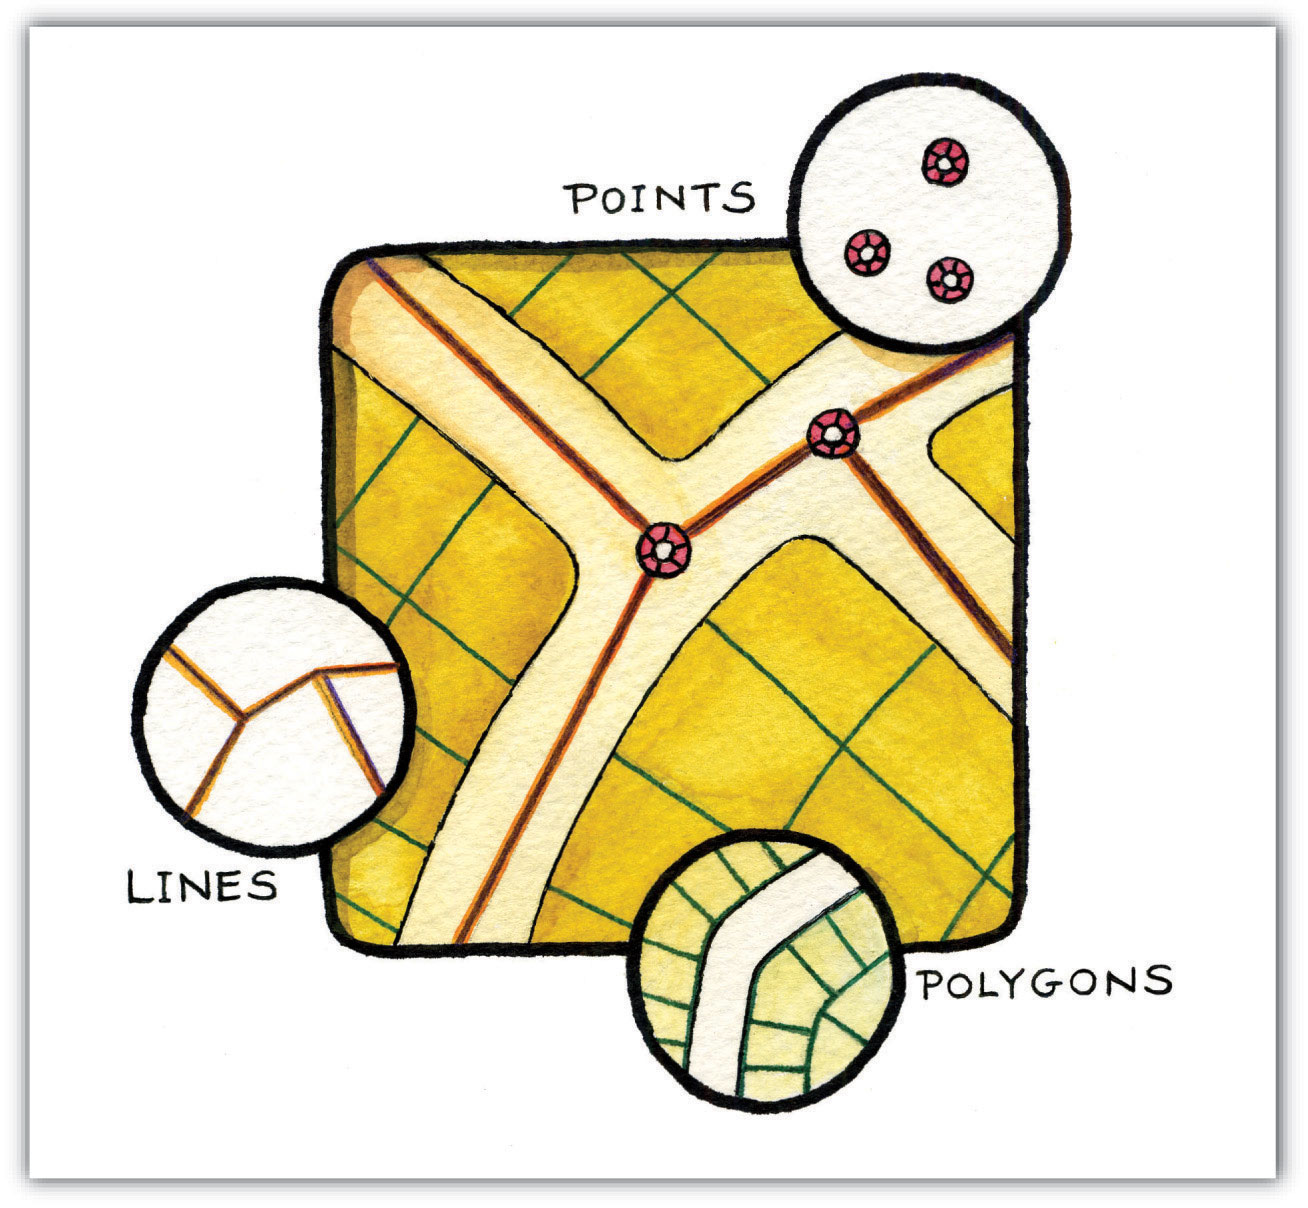 Points Lines and Polygons